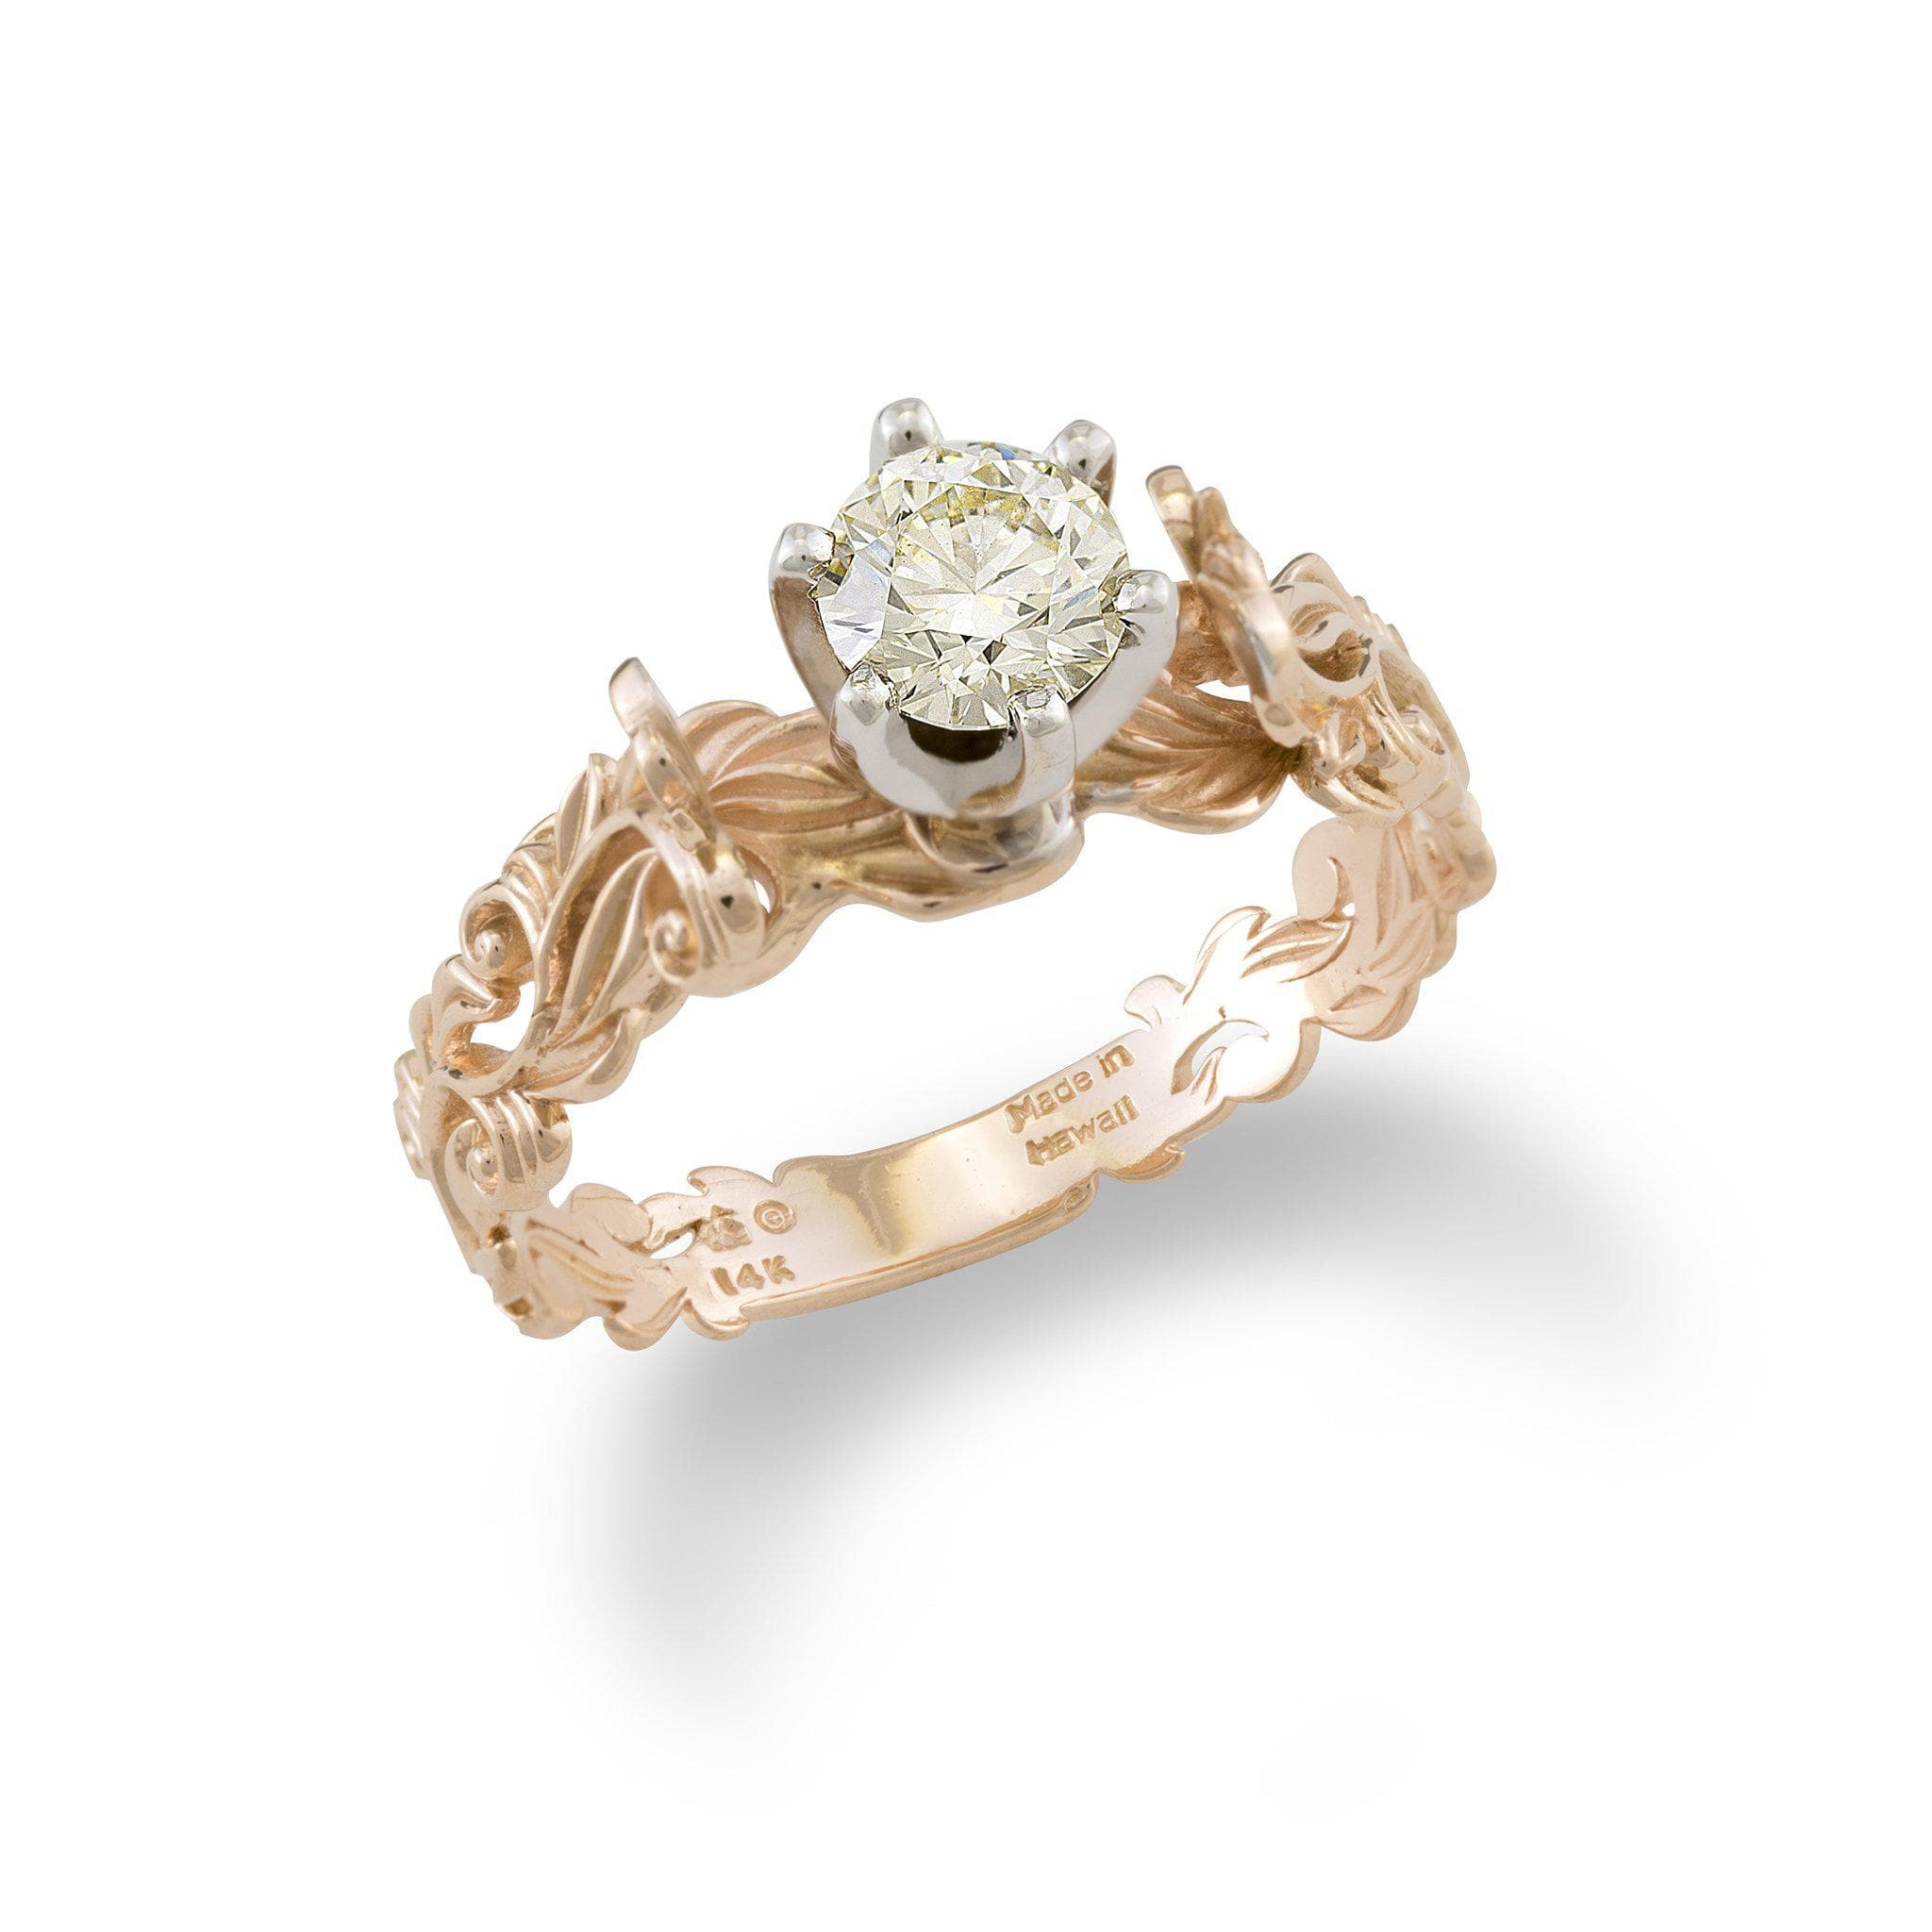 exquisite new wedding american engagement of rings at affordable swiss luxury